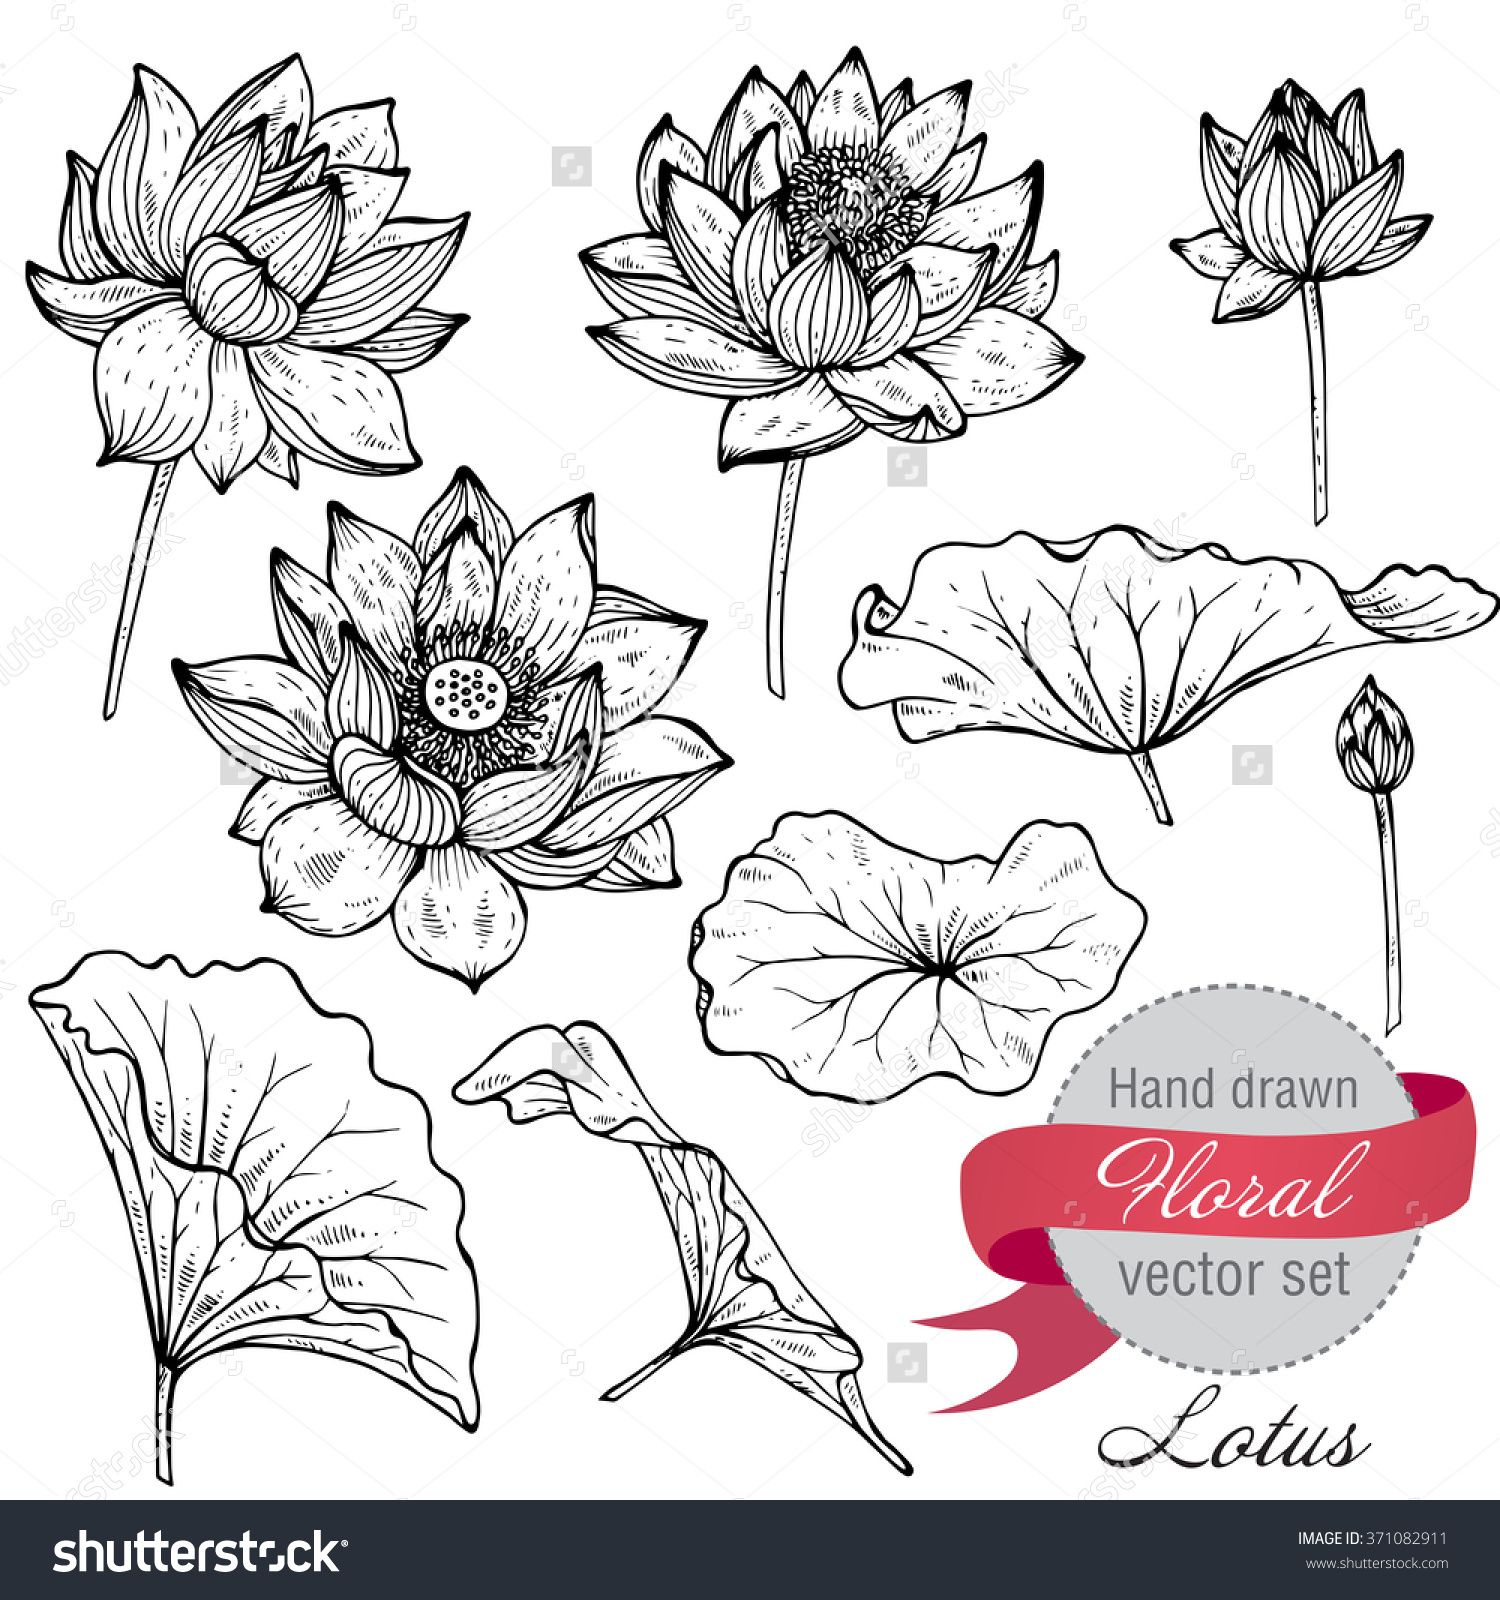 Vector set of hand drawn lotus flowers and leaves sketch floral vector set of hand drawn lotus flowers and leaves sketch floral botany collection in graphic black and white style 371082911 shutterstock izmirmasajfo